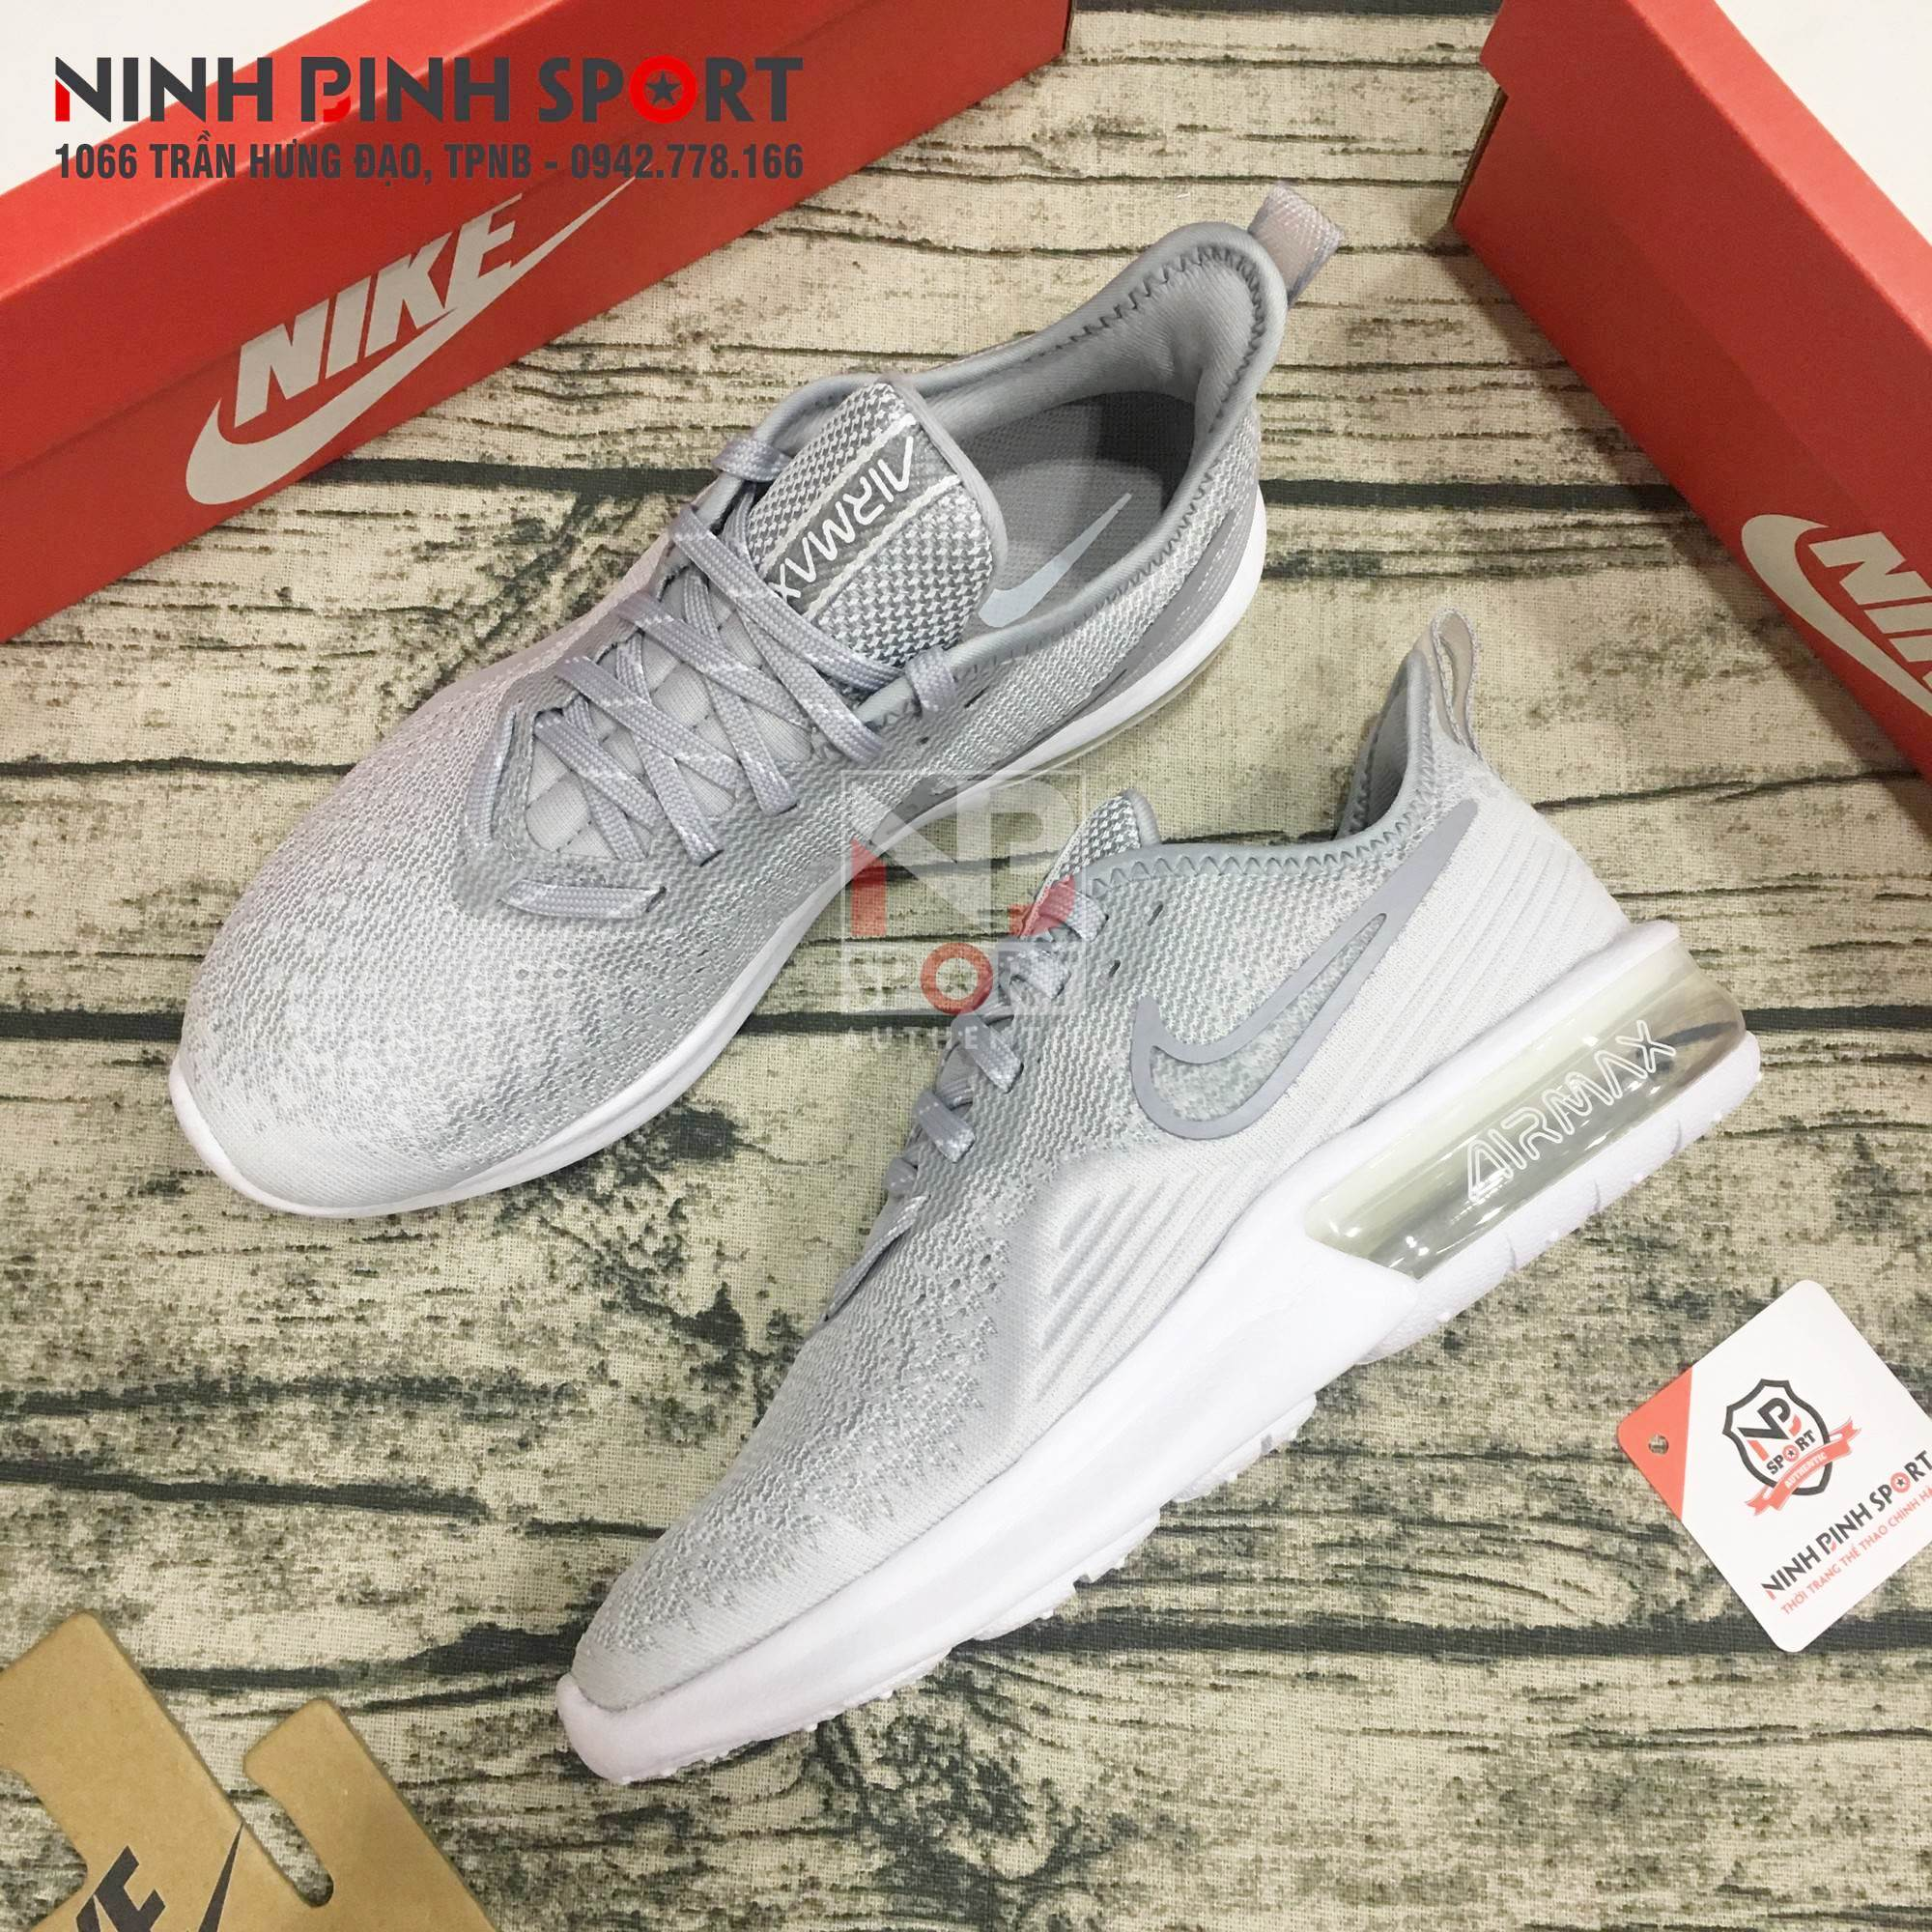 Giày thể thao nữ Nike Air Max Sequent 4 AO4486-100